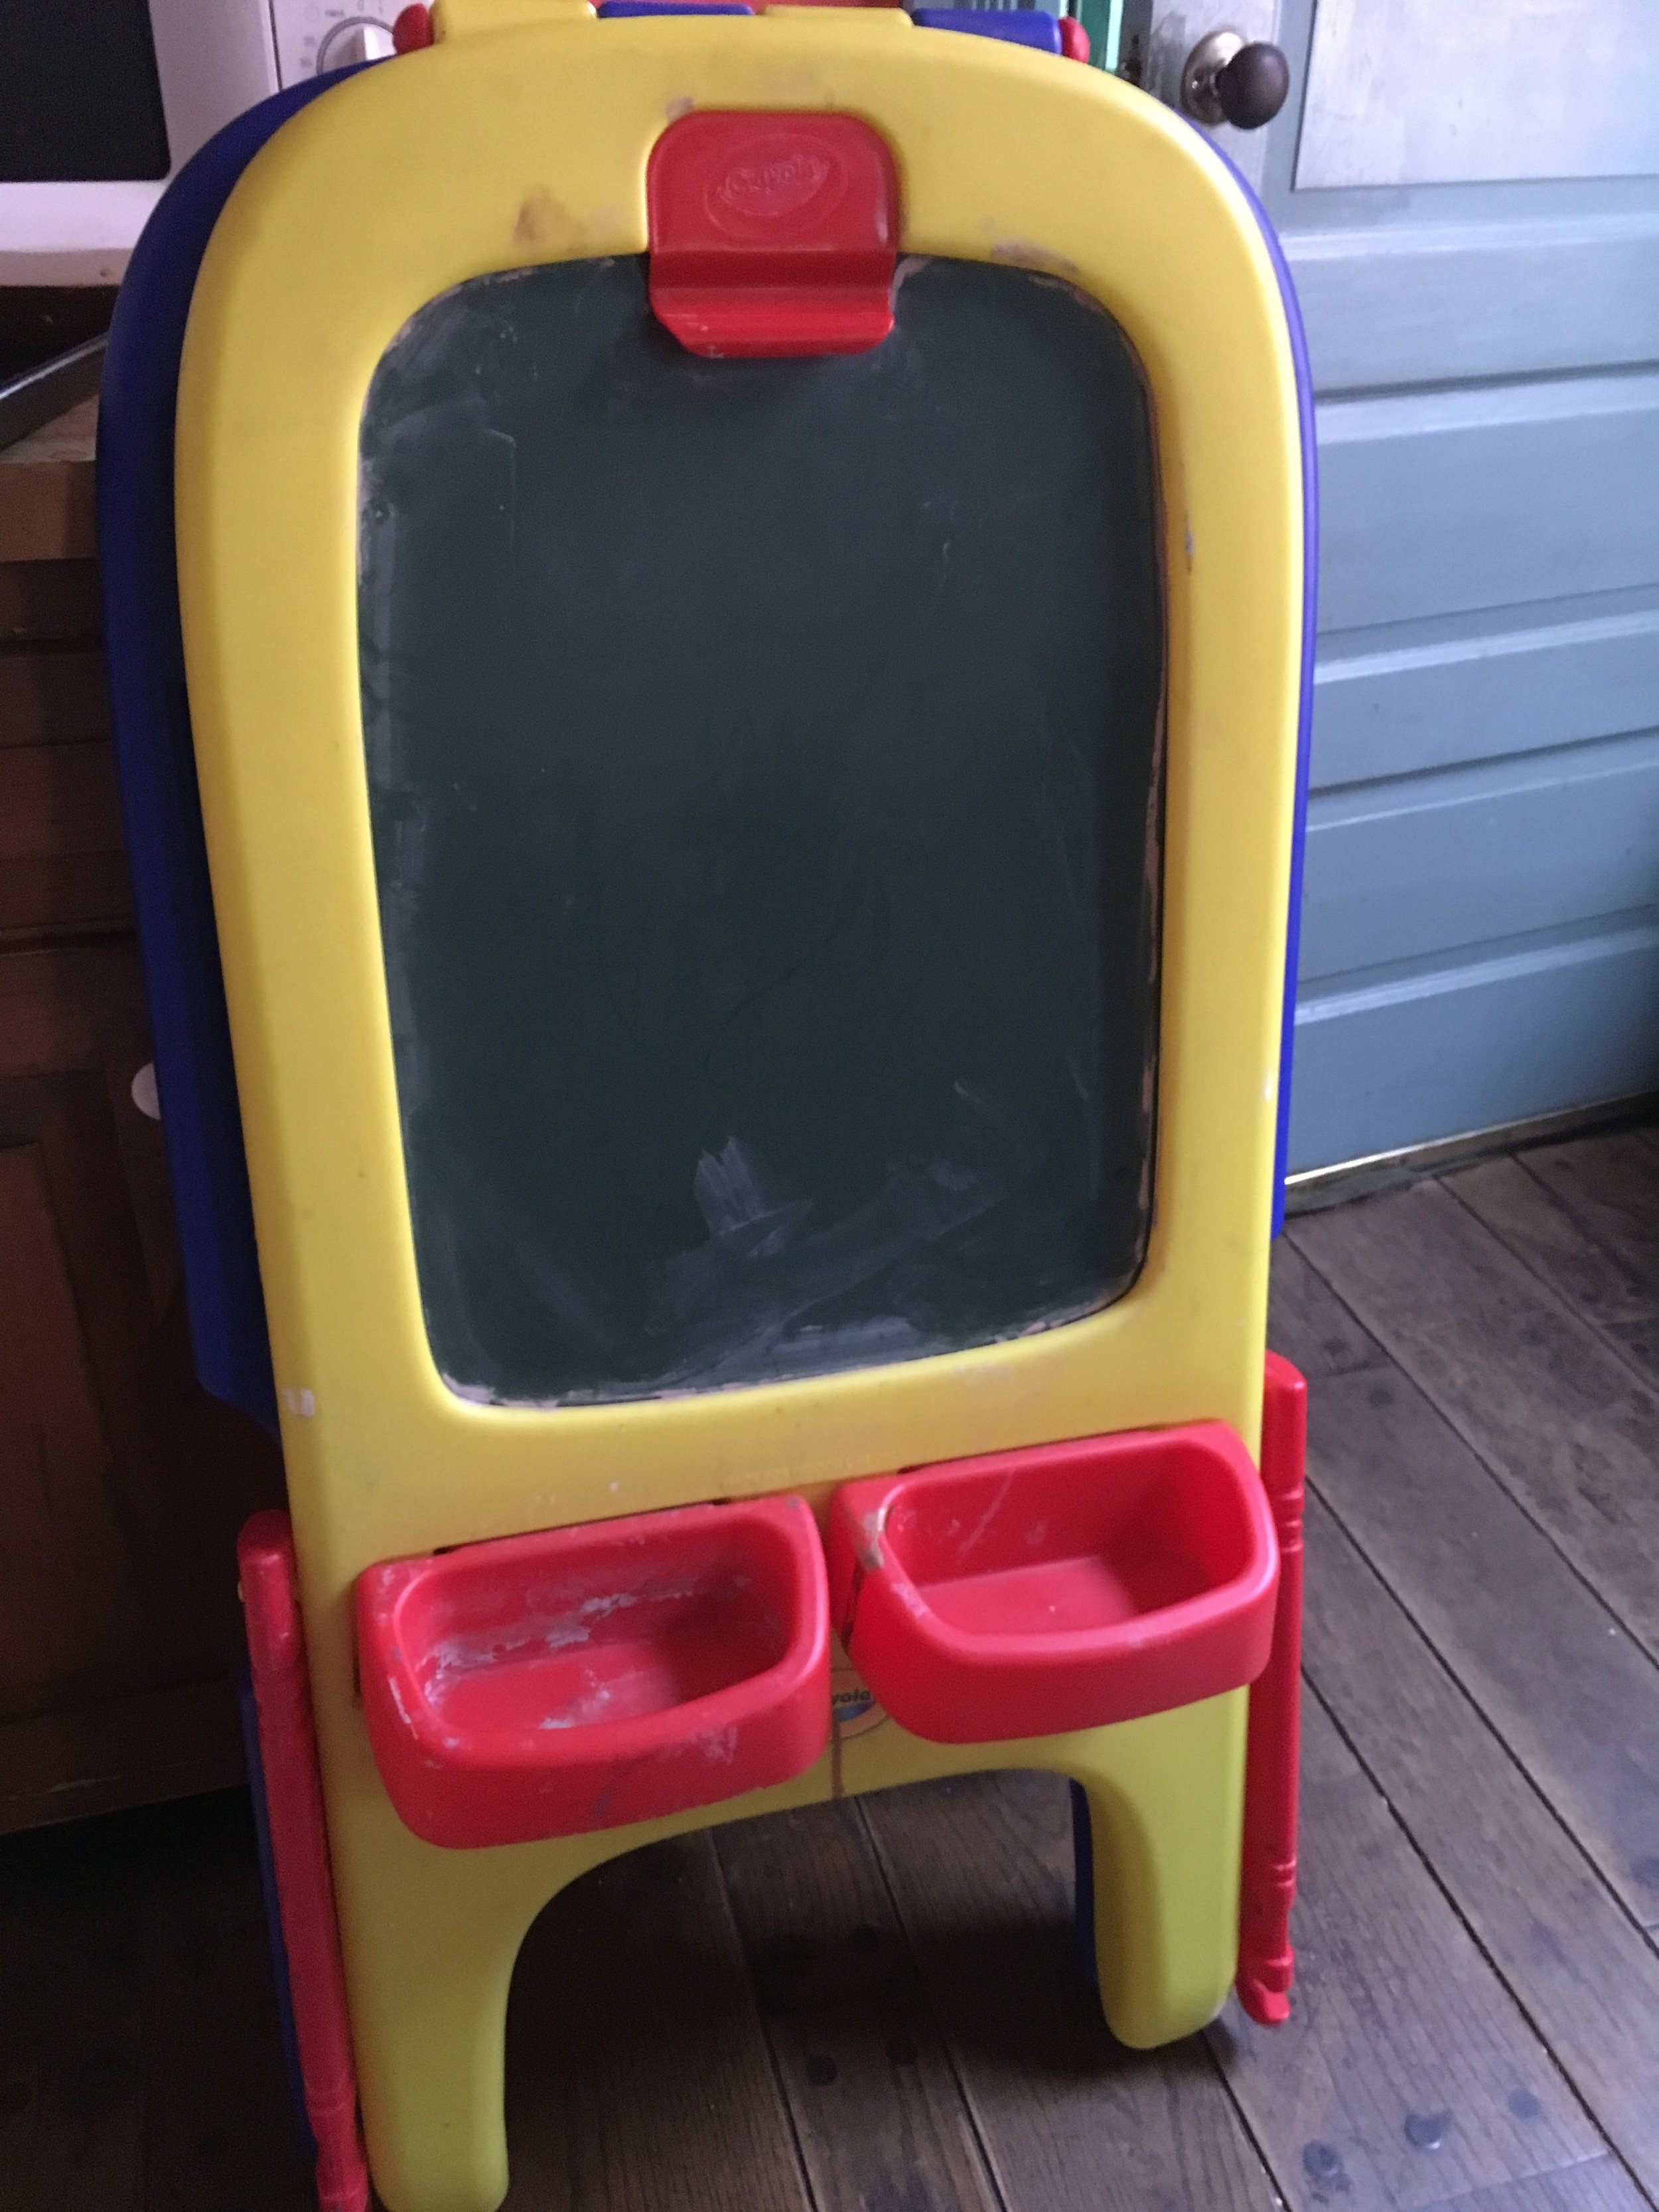 Crayola Easel (needs to be cleaned) $15